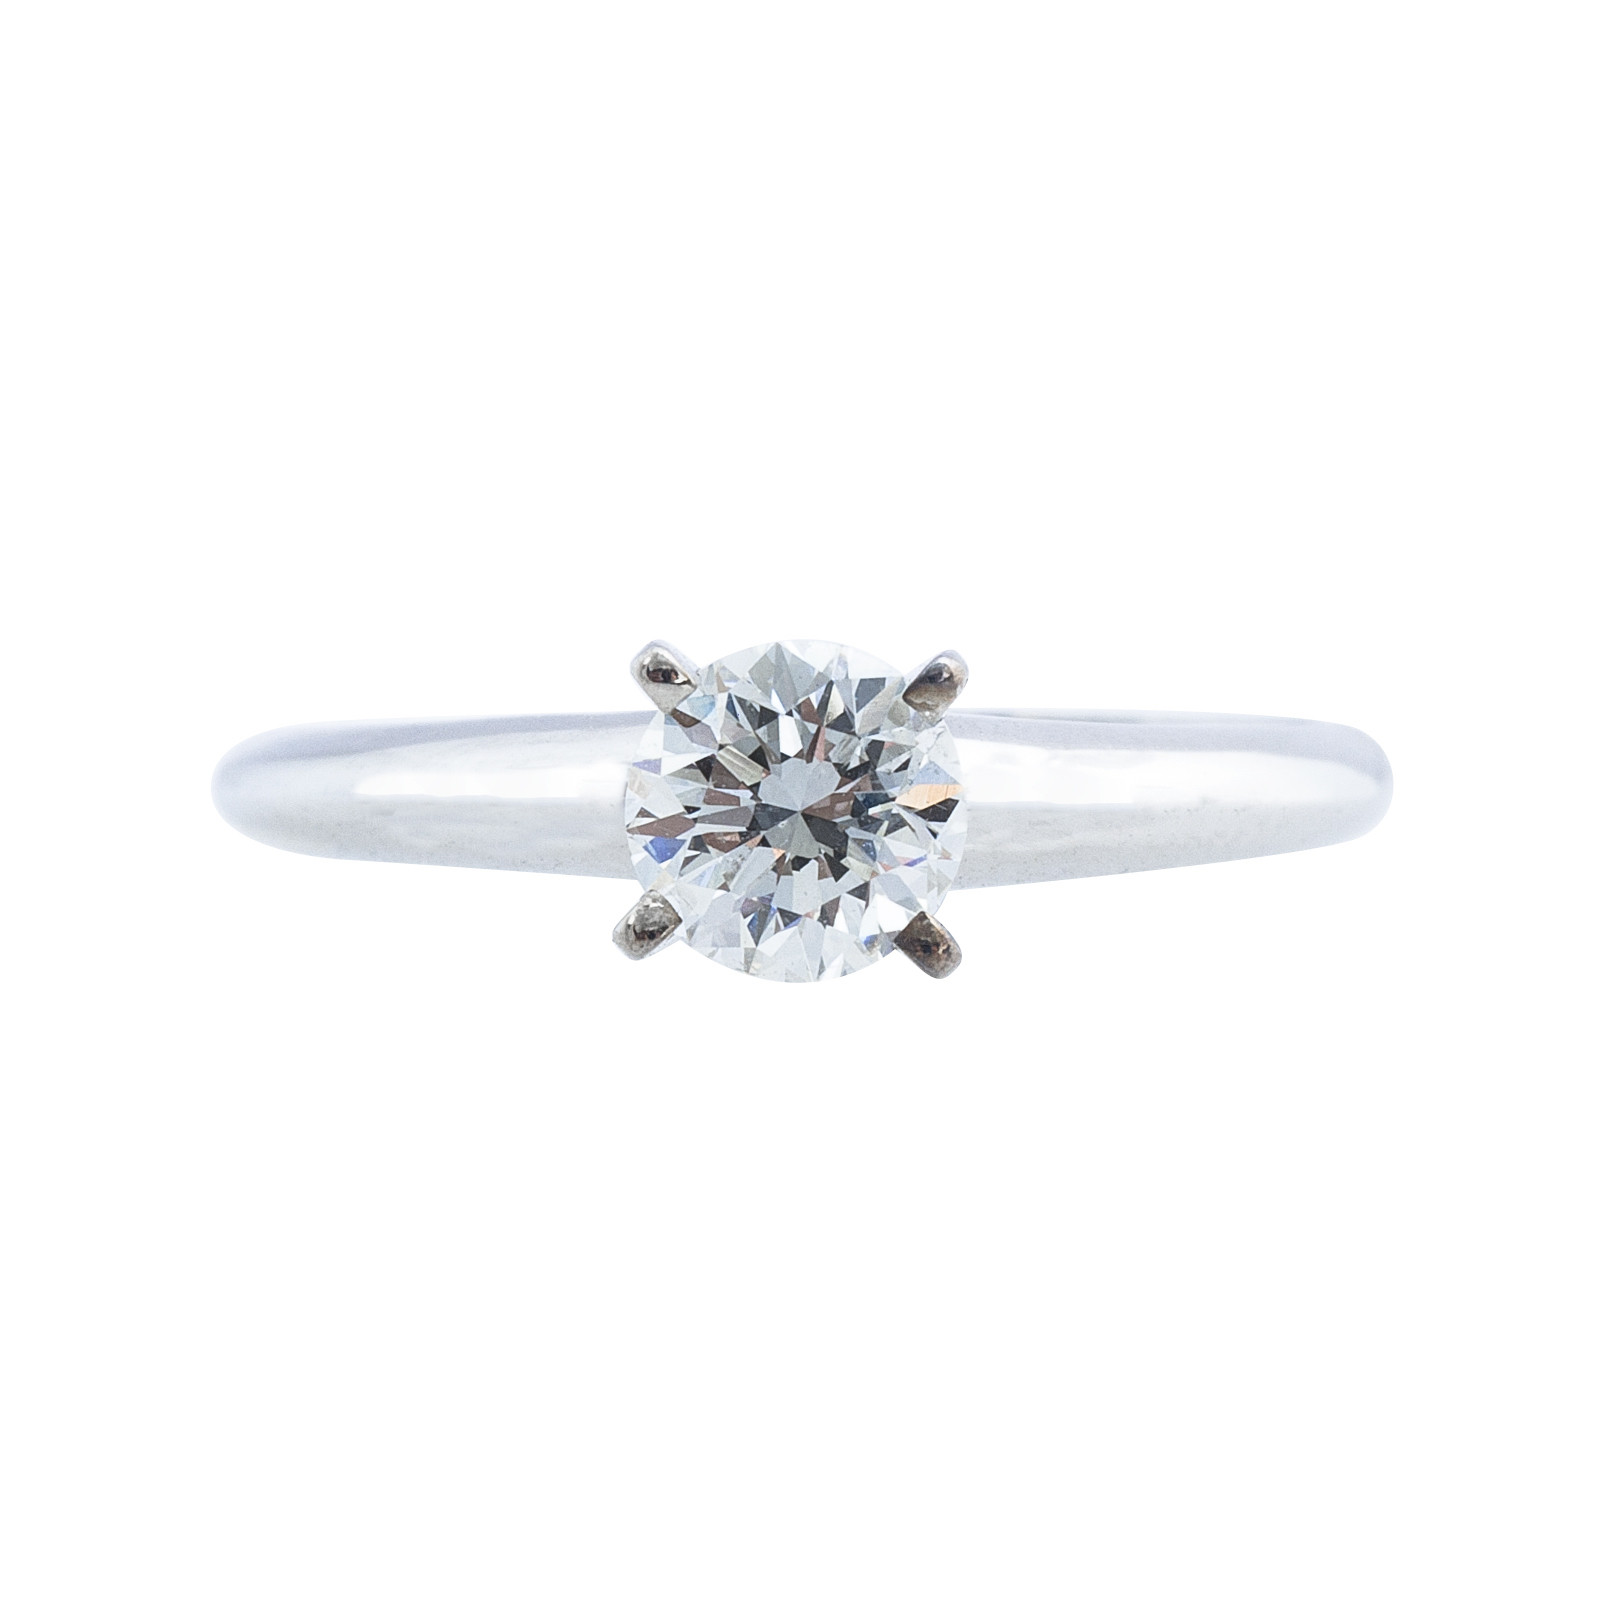 Vintage 0.58 CT Diamond Solitaire Engagement Ring